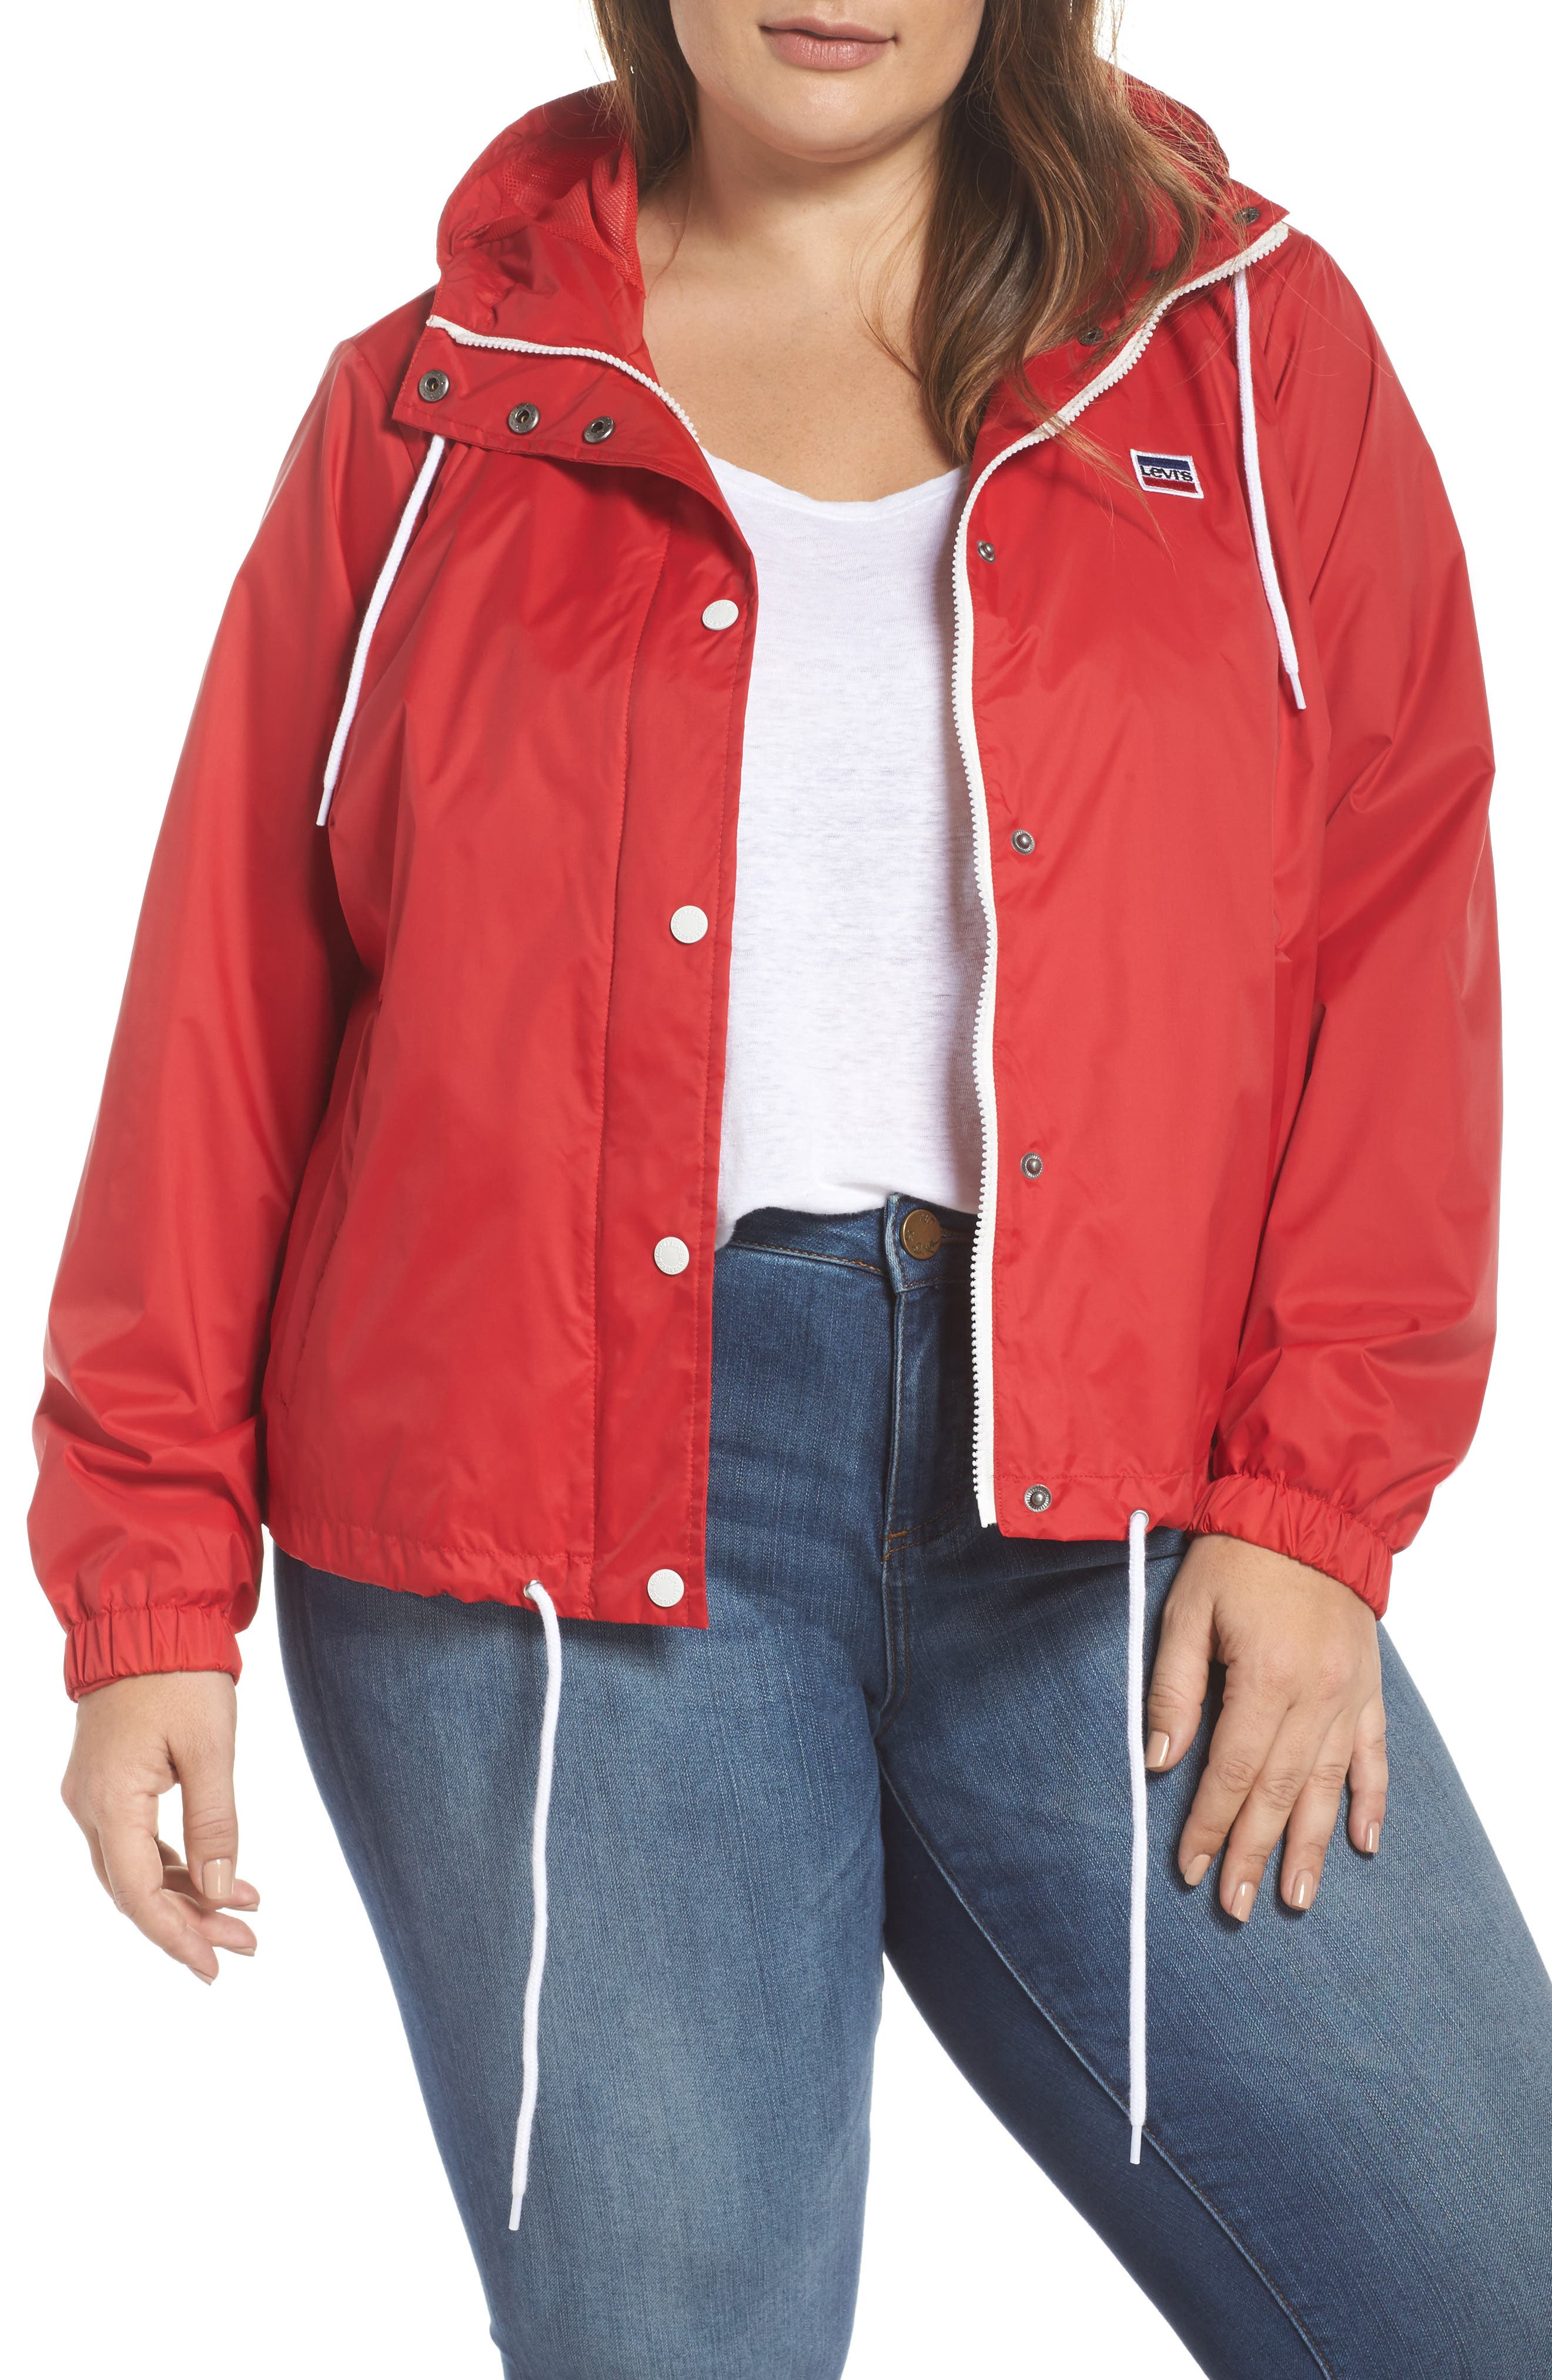 Retro Hooded Coach's Jacket,                         Main,                         color, Red